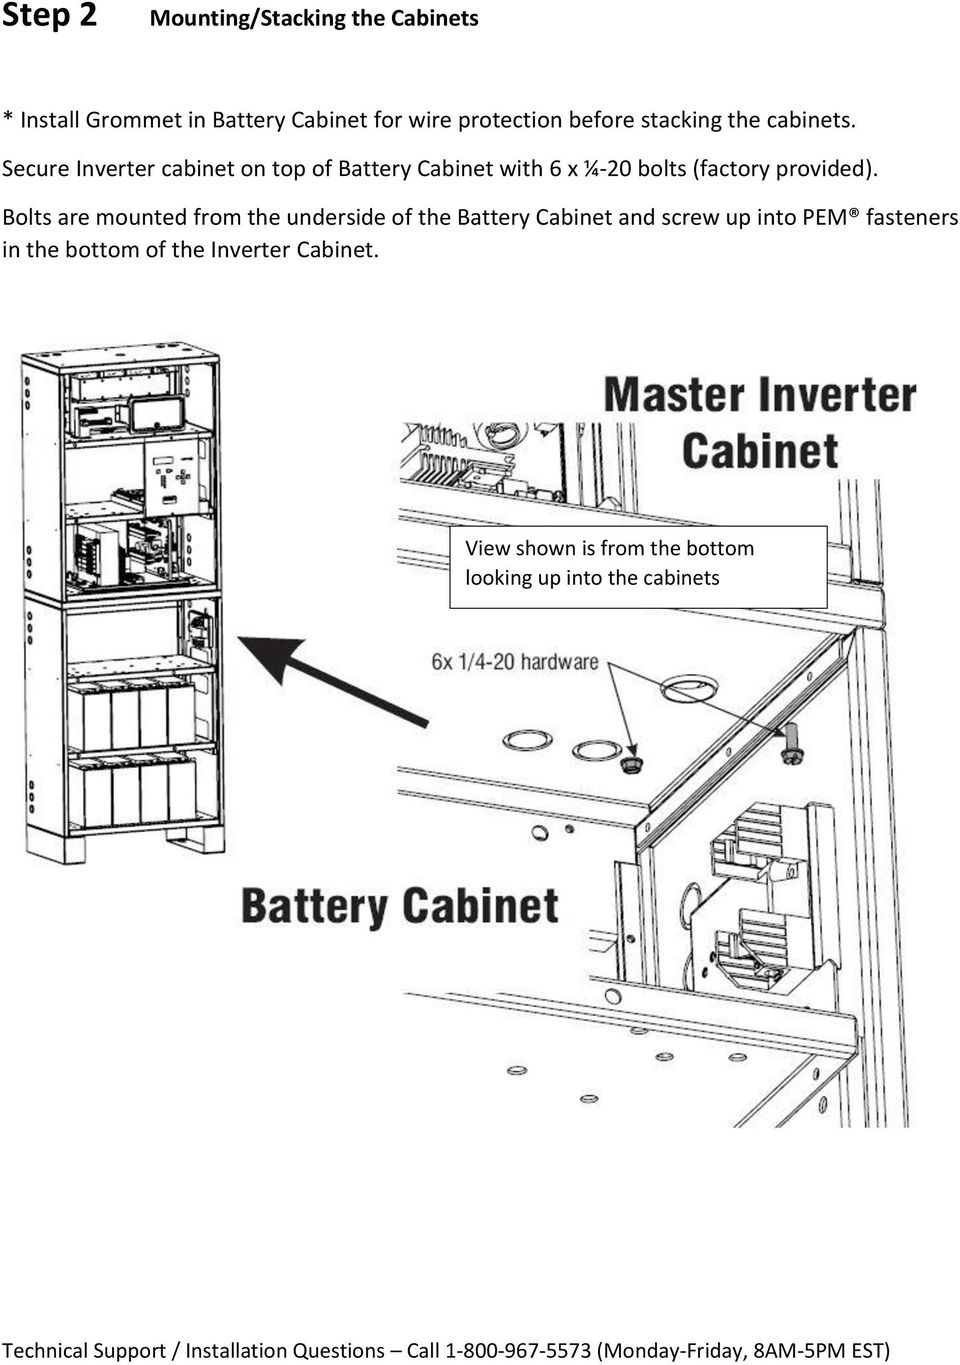 Secure Inverter cabinet on top of Battery Cabinet with 6 x ¼-20 bolts (factory provided).